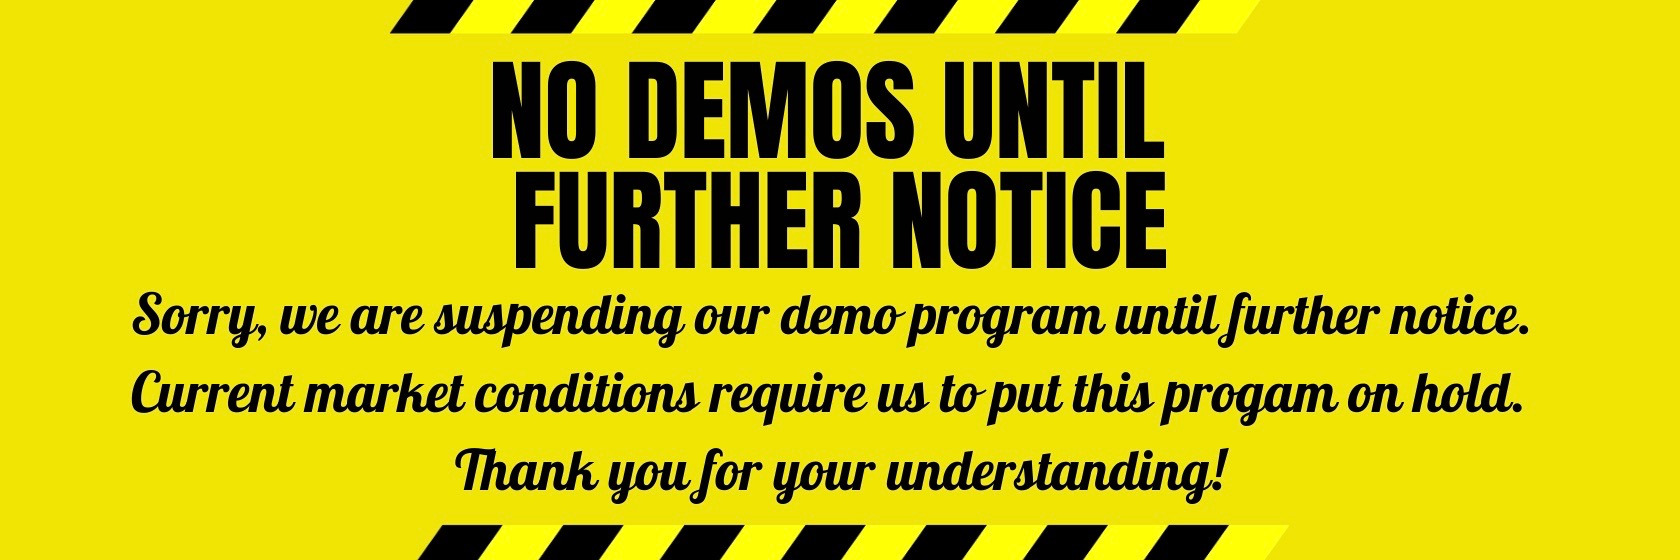 No Demos until further notice! We're suspending our demo program due to current market conditions that require us to put this program on hold. Thank you for your understanding!